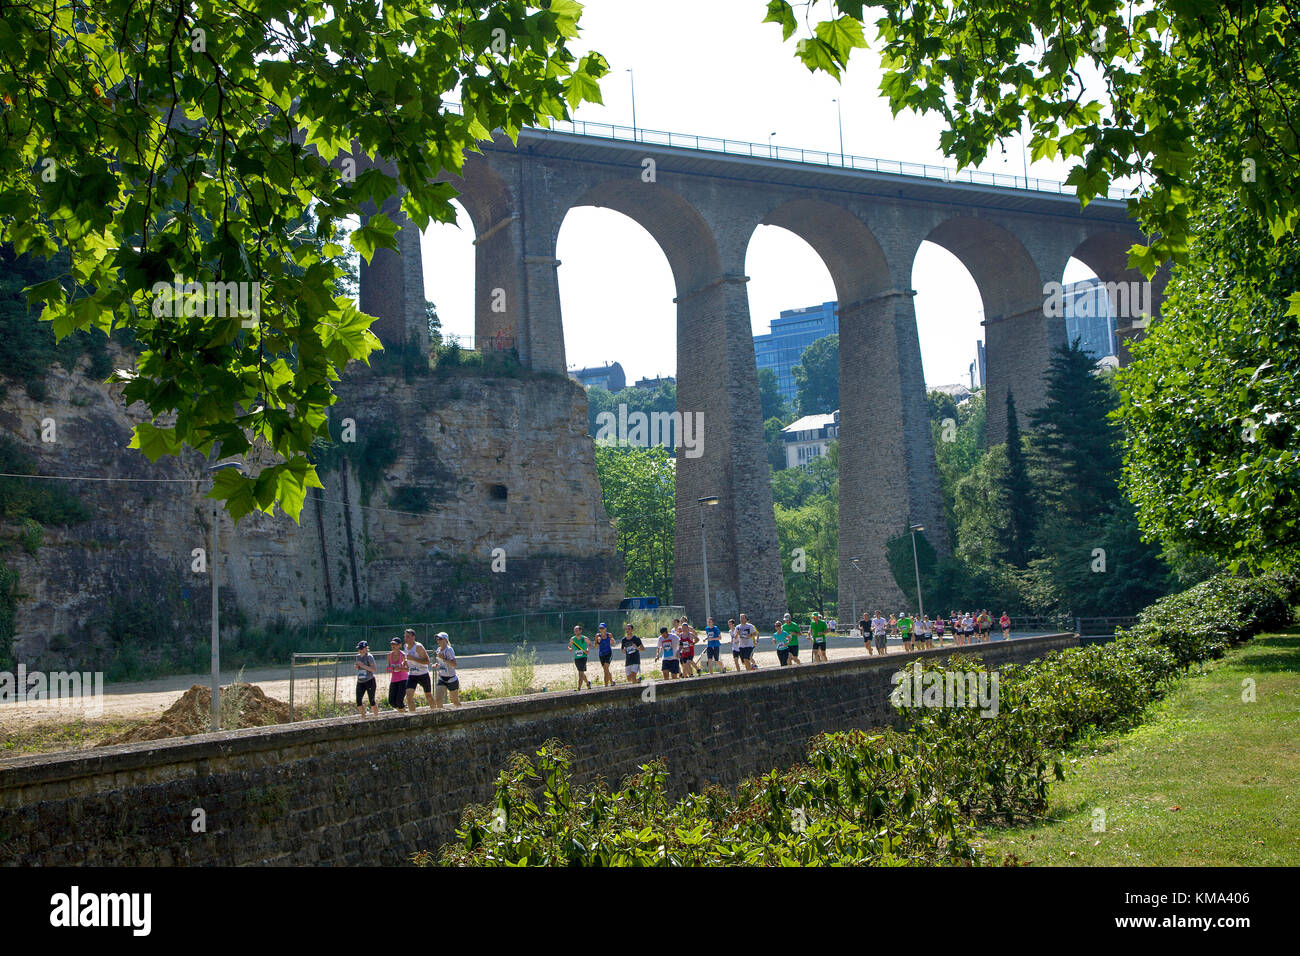 J.P. Morgan City Jogging, Viaduct, also known as Passerelle or old bridge, Luxembourg-city, Luxembourg, Europe - Stock Image